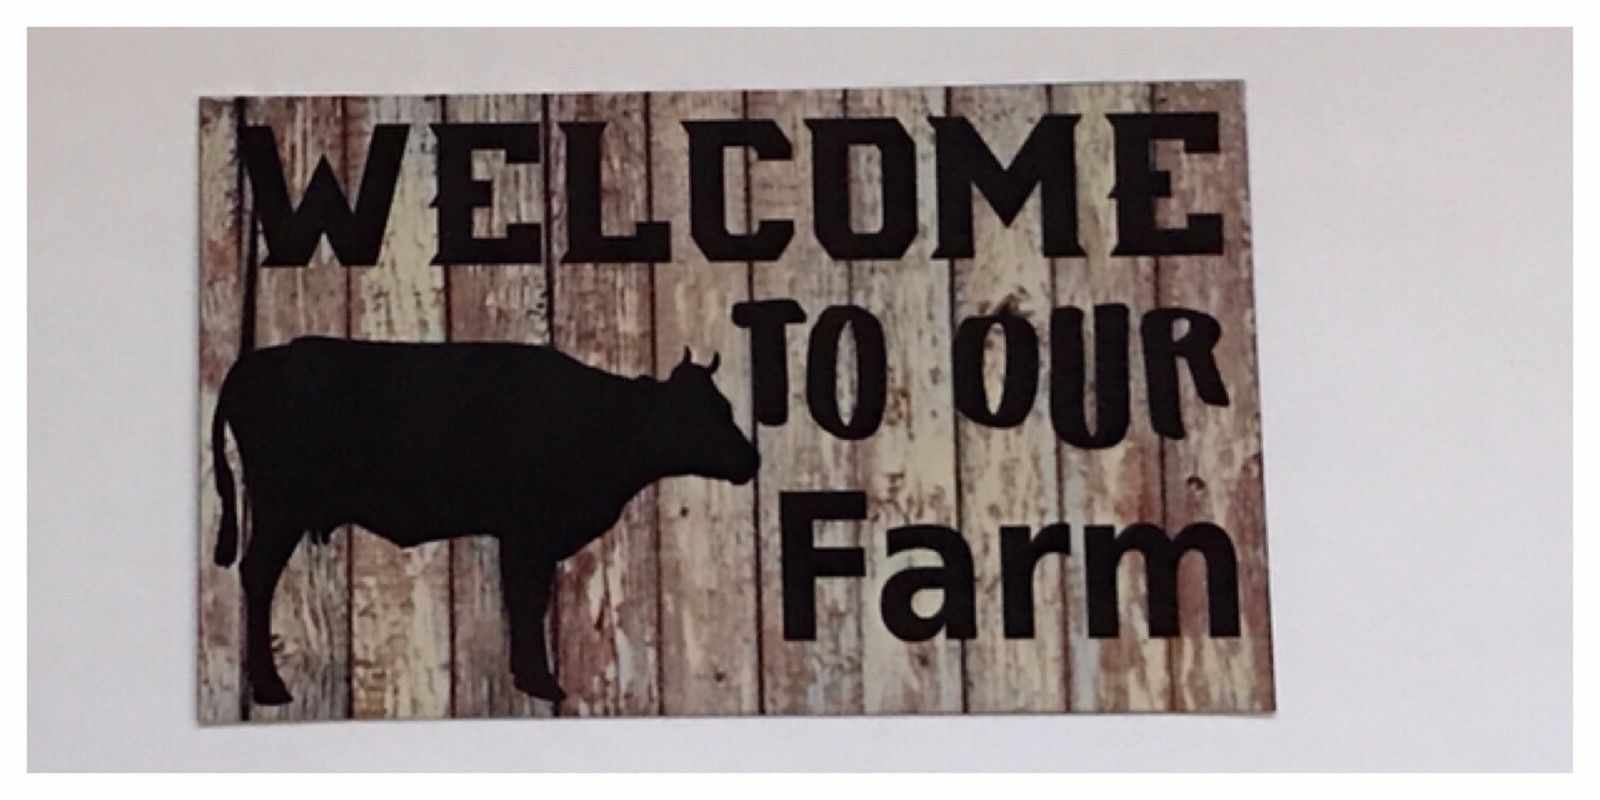 Welcome To Our Farm Cow Sign Wall Plaque Or Hanging Plaques & Signs The Renmy Store